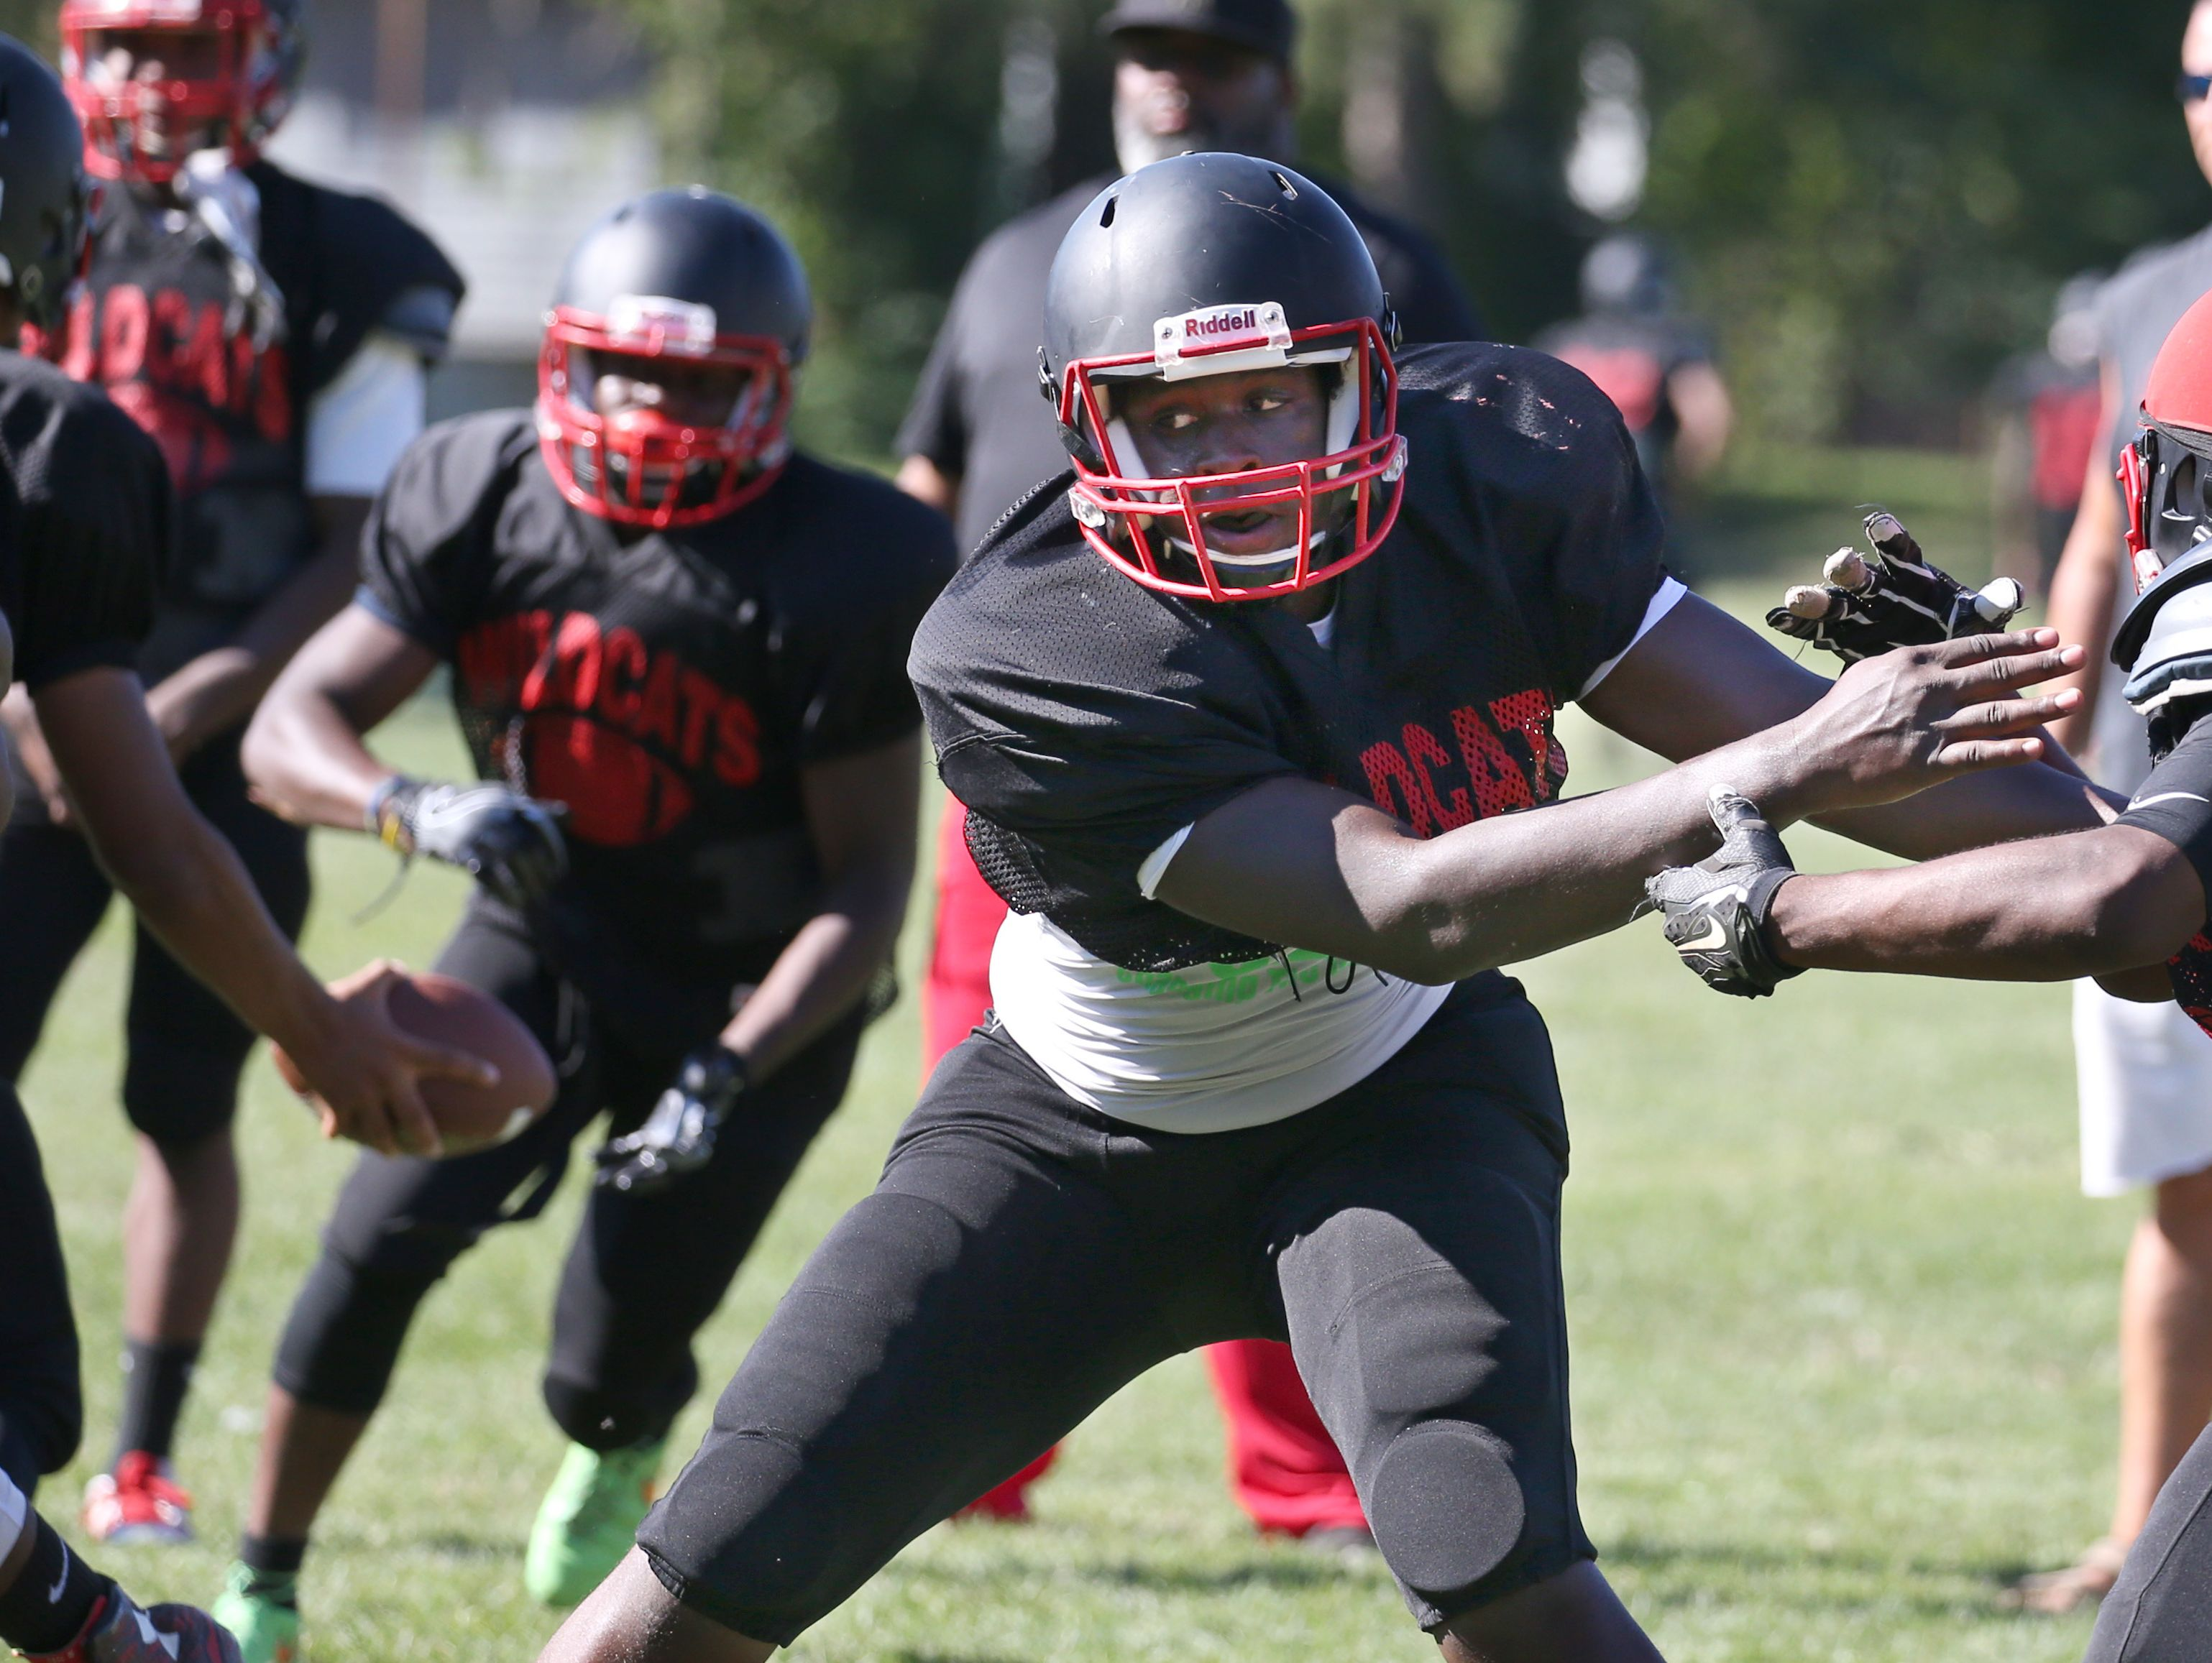 Wilson lineman Jamal McCullogh, second from right, throws his block away as he protects quarterback James Cotton, back left, who hands the ball off to running back Earl English during their practice Monday, Aug. 29, 2016 in Rochester.